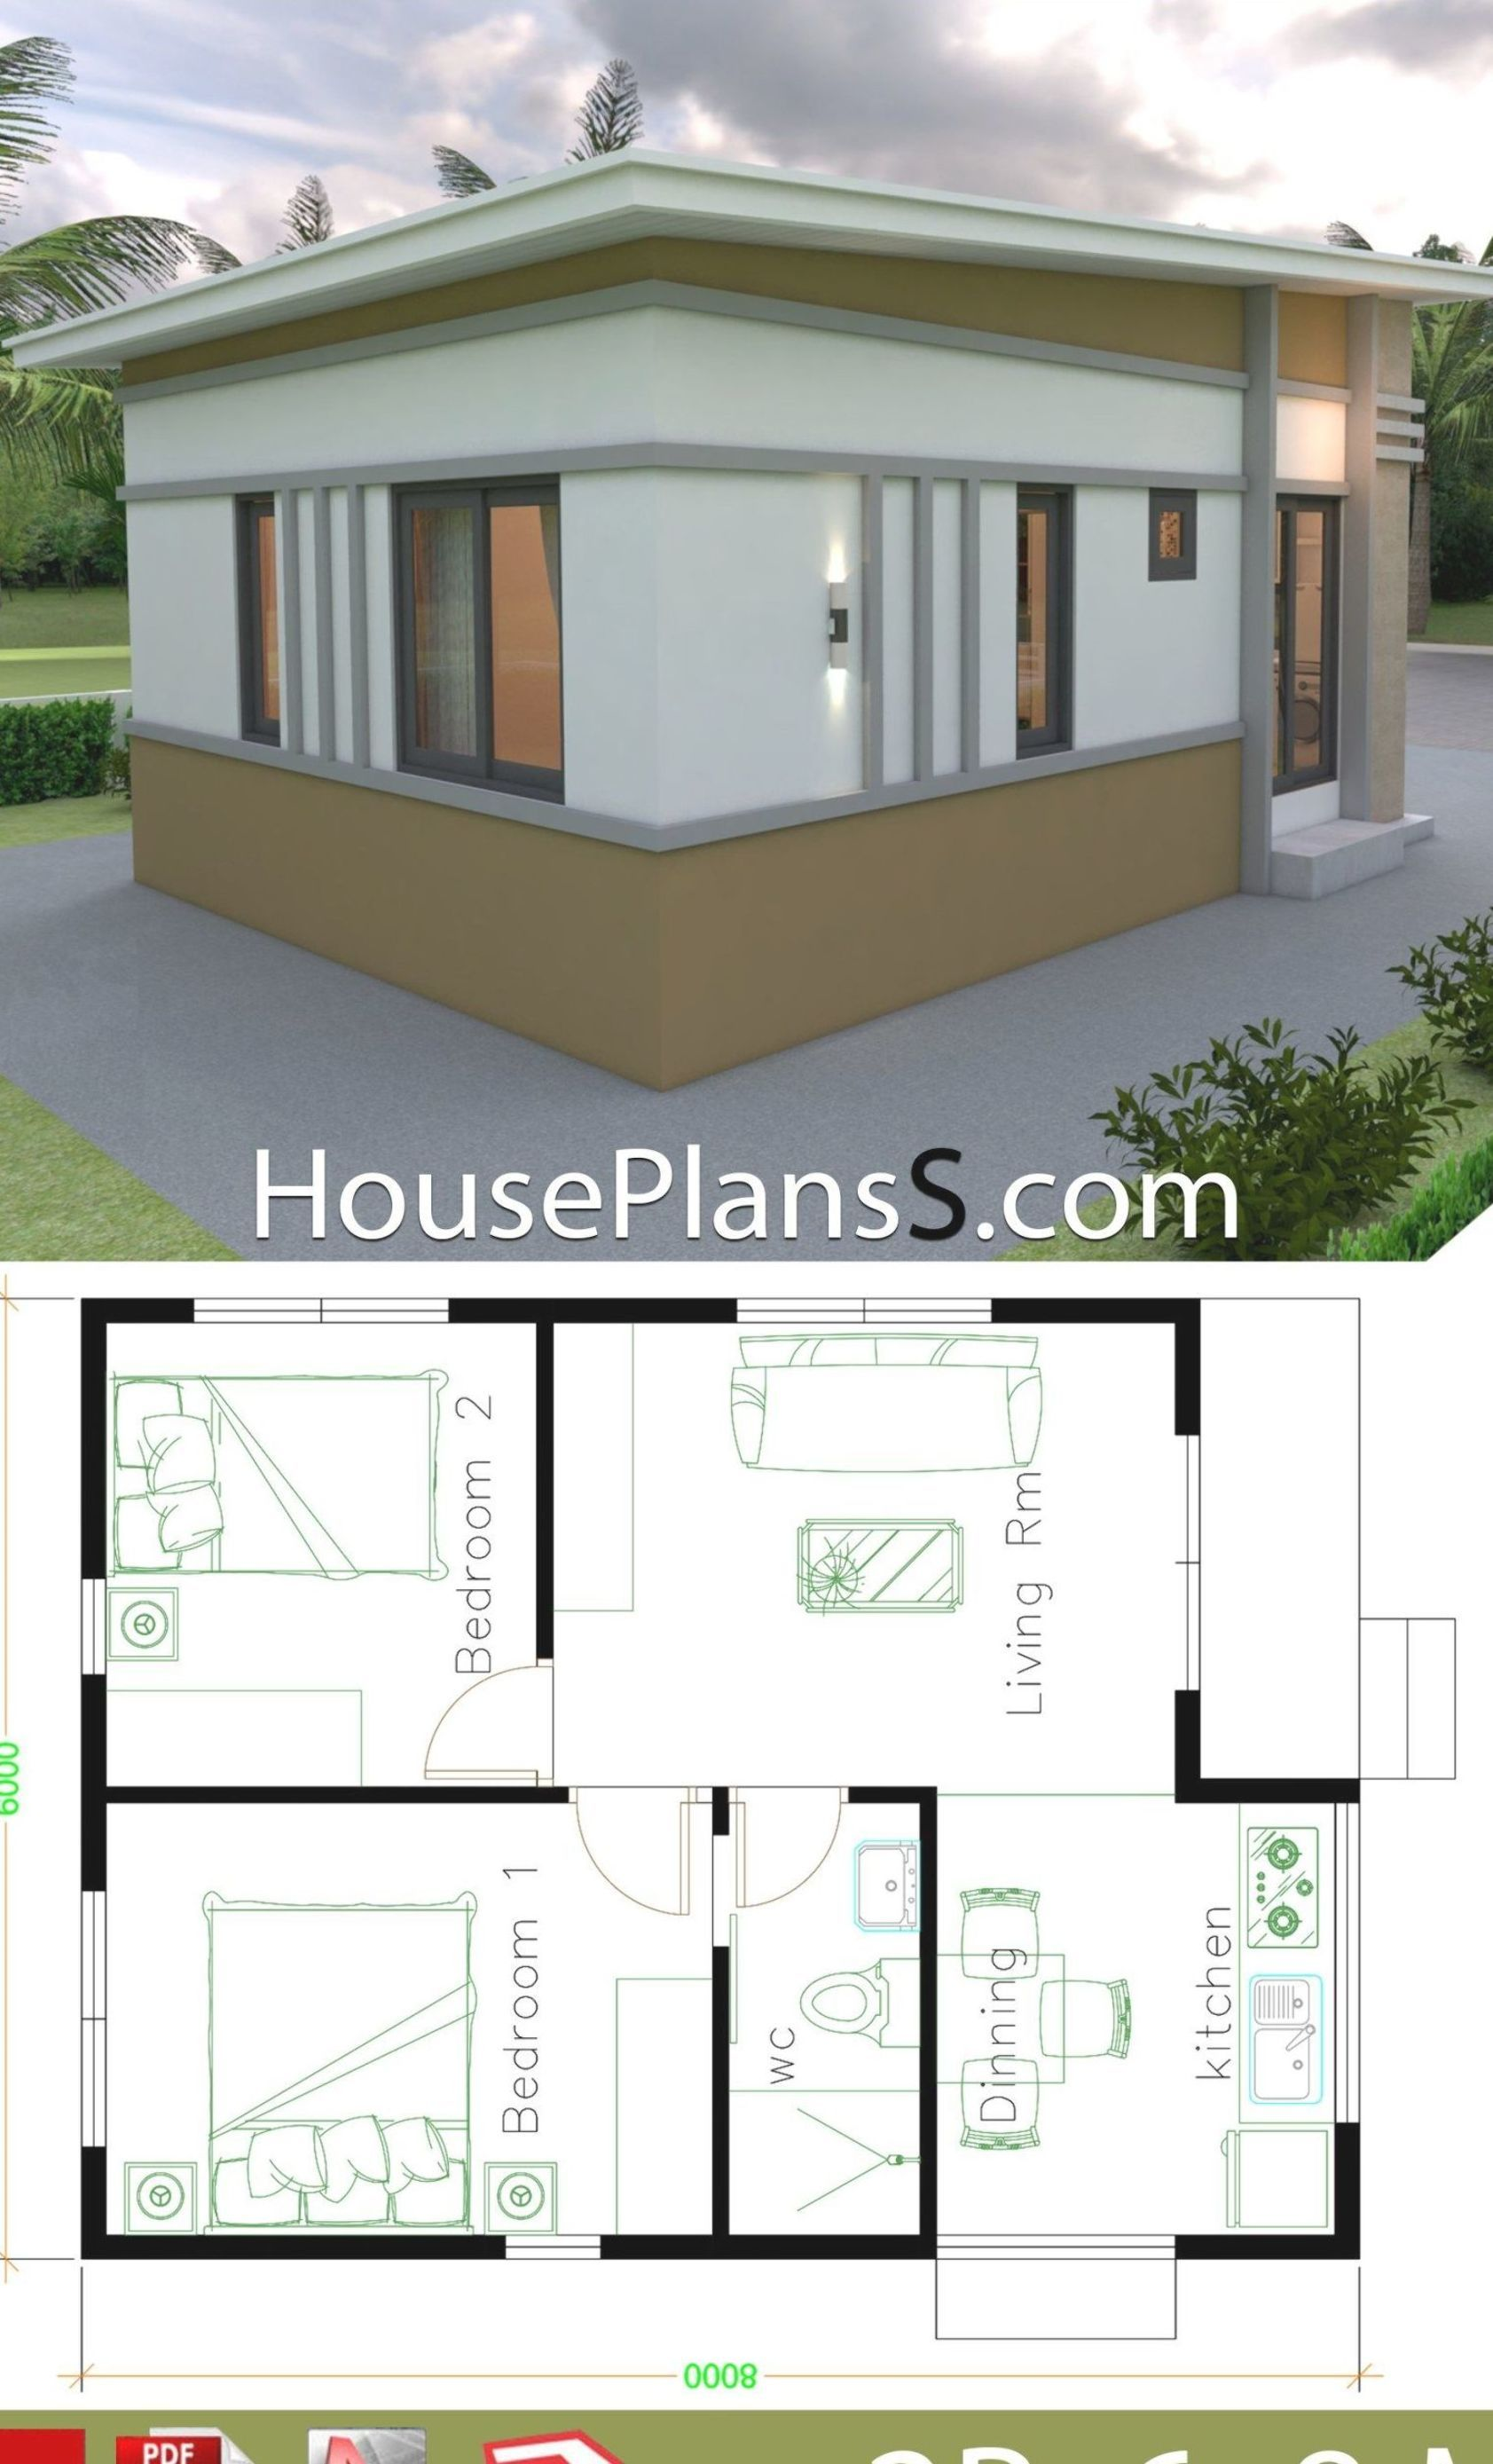 Small House Design Plans 6x8 With 2 Bedrooms House Plans Sam Small House Design Plans House Plans Small House Design